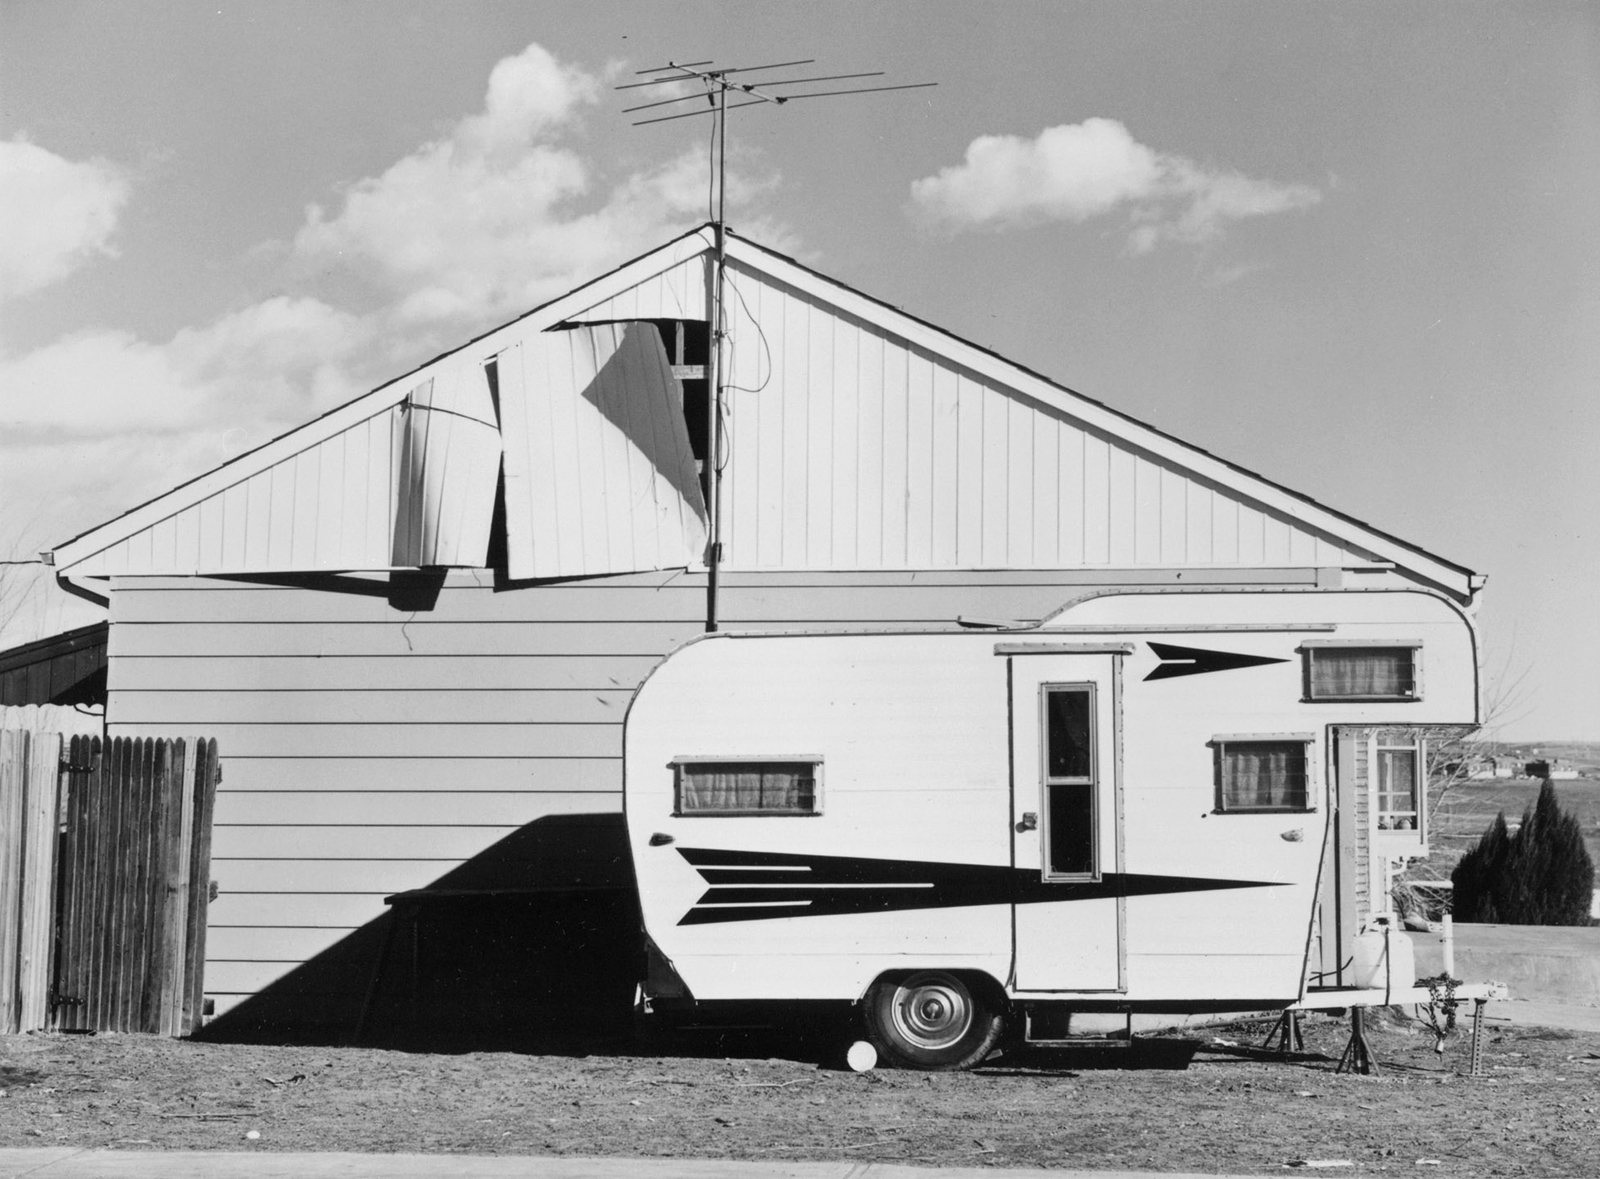 Robert Adams (American, b. 1937), <i>Tract House, Westminster, Colorado</i>, 1974; George Eastman House collections; © Robert Adams, courtesy of Fraenkel Gallery, San Francisco, and Matthew Marks Gallery, New York